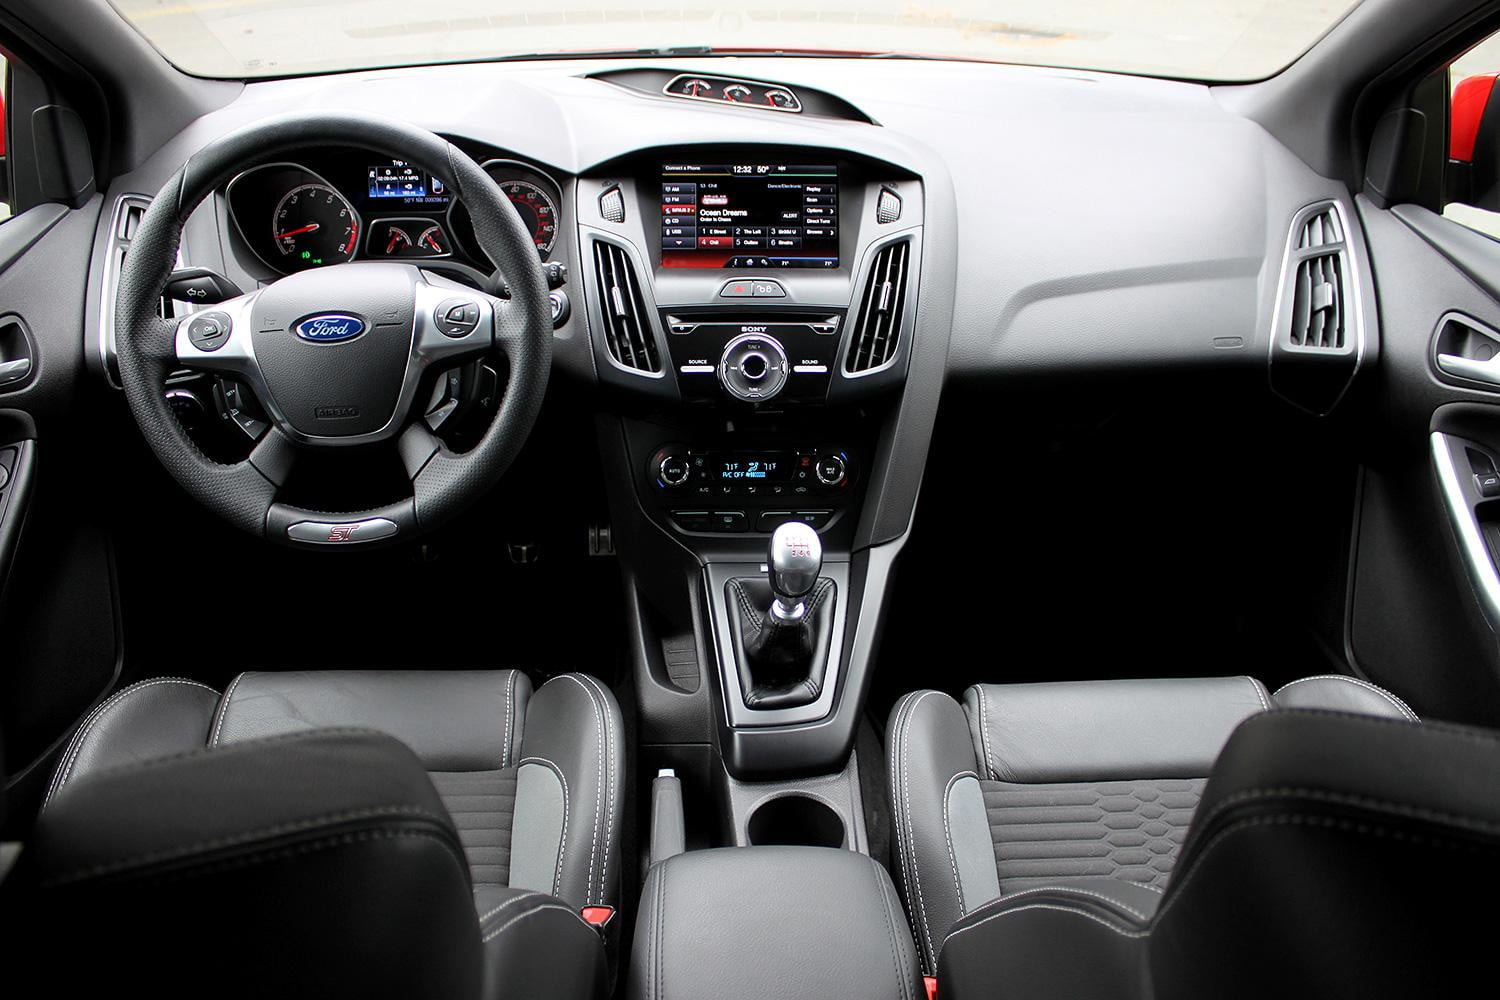 2014 Ford Focus Interior >> 2014 Ford Focus St Review Digital Trends